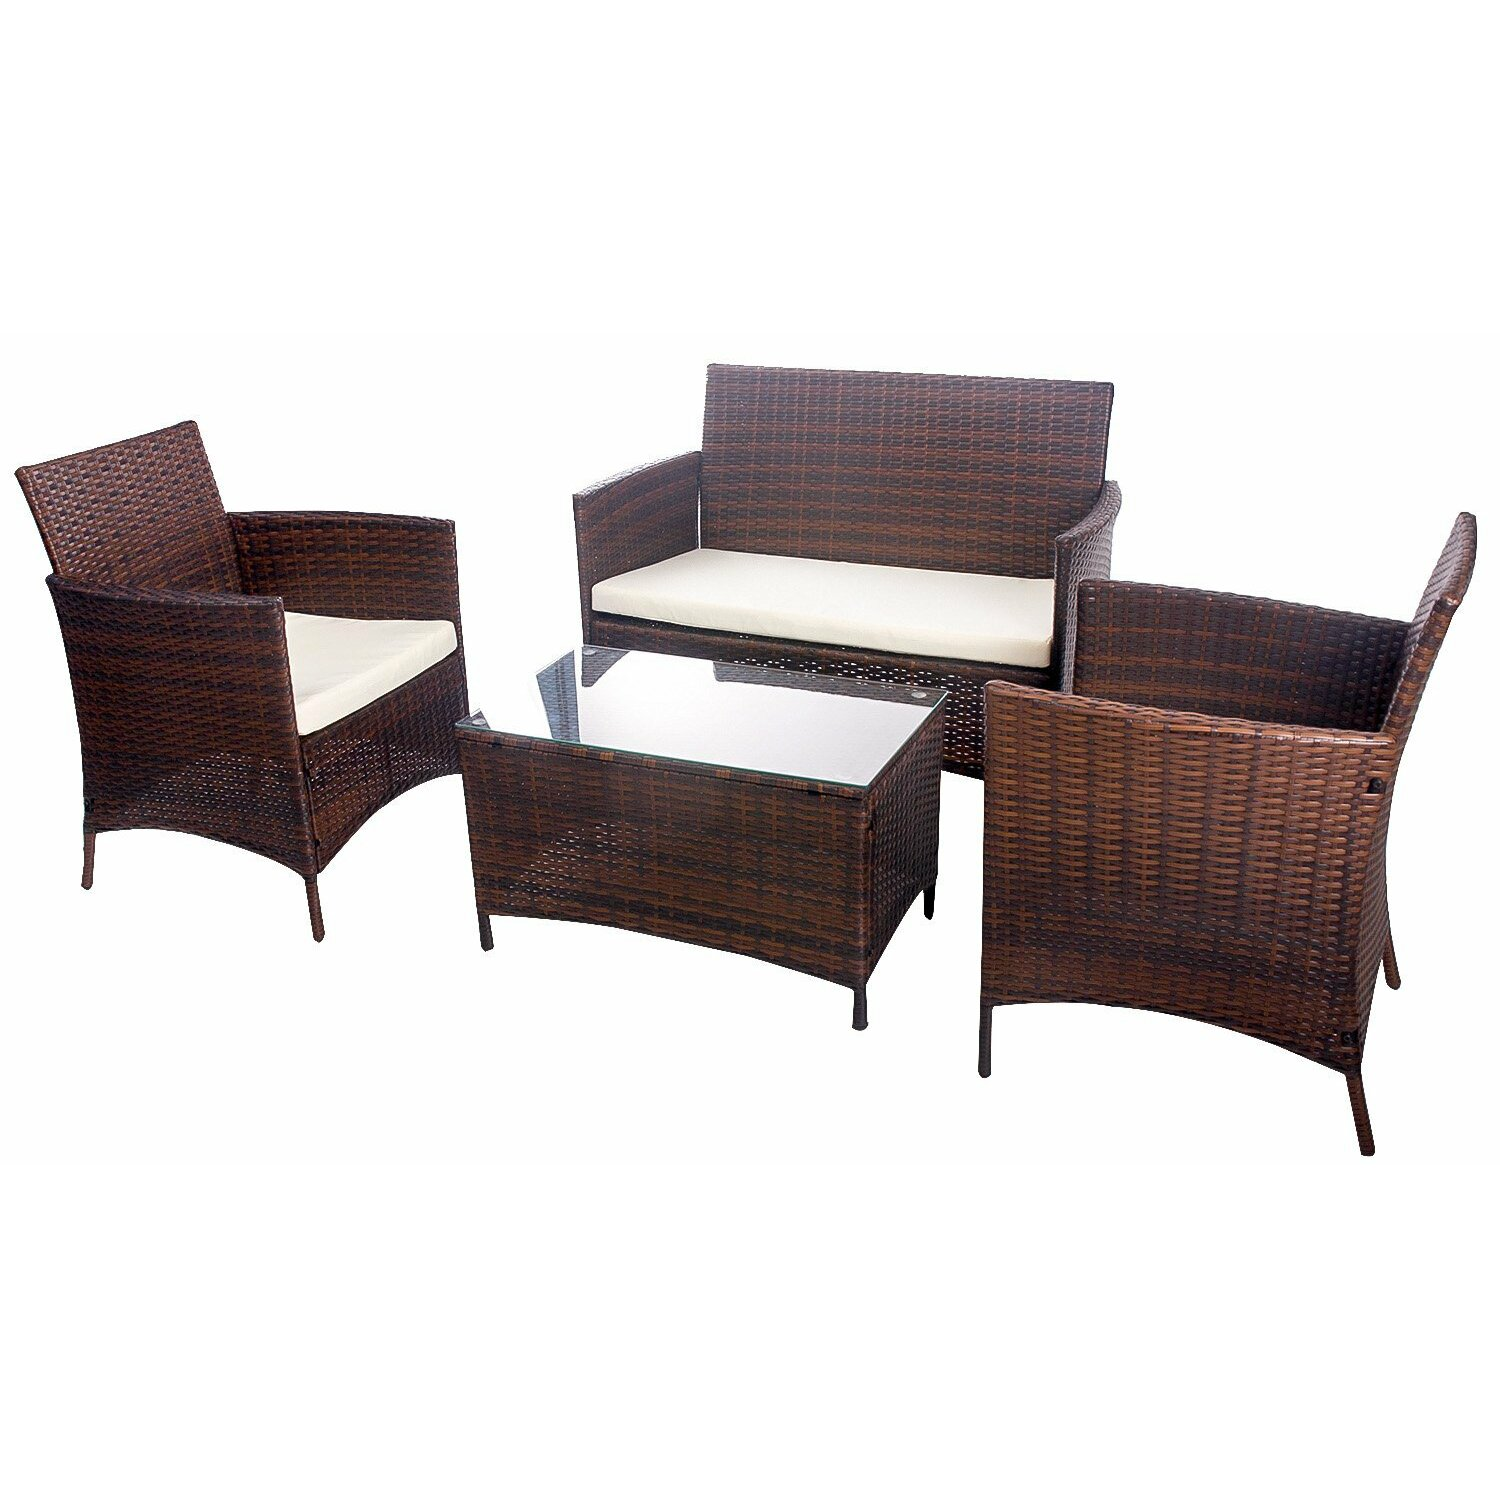 Merax 4 piece deep seating group with cushion reviews for Garden furniture cushions